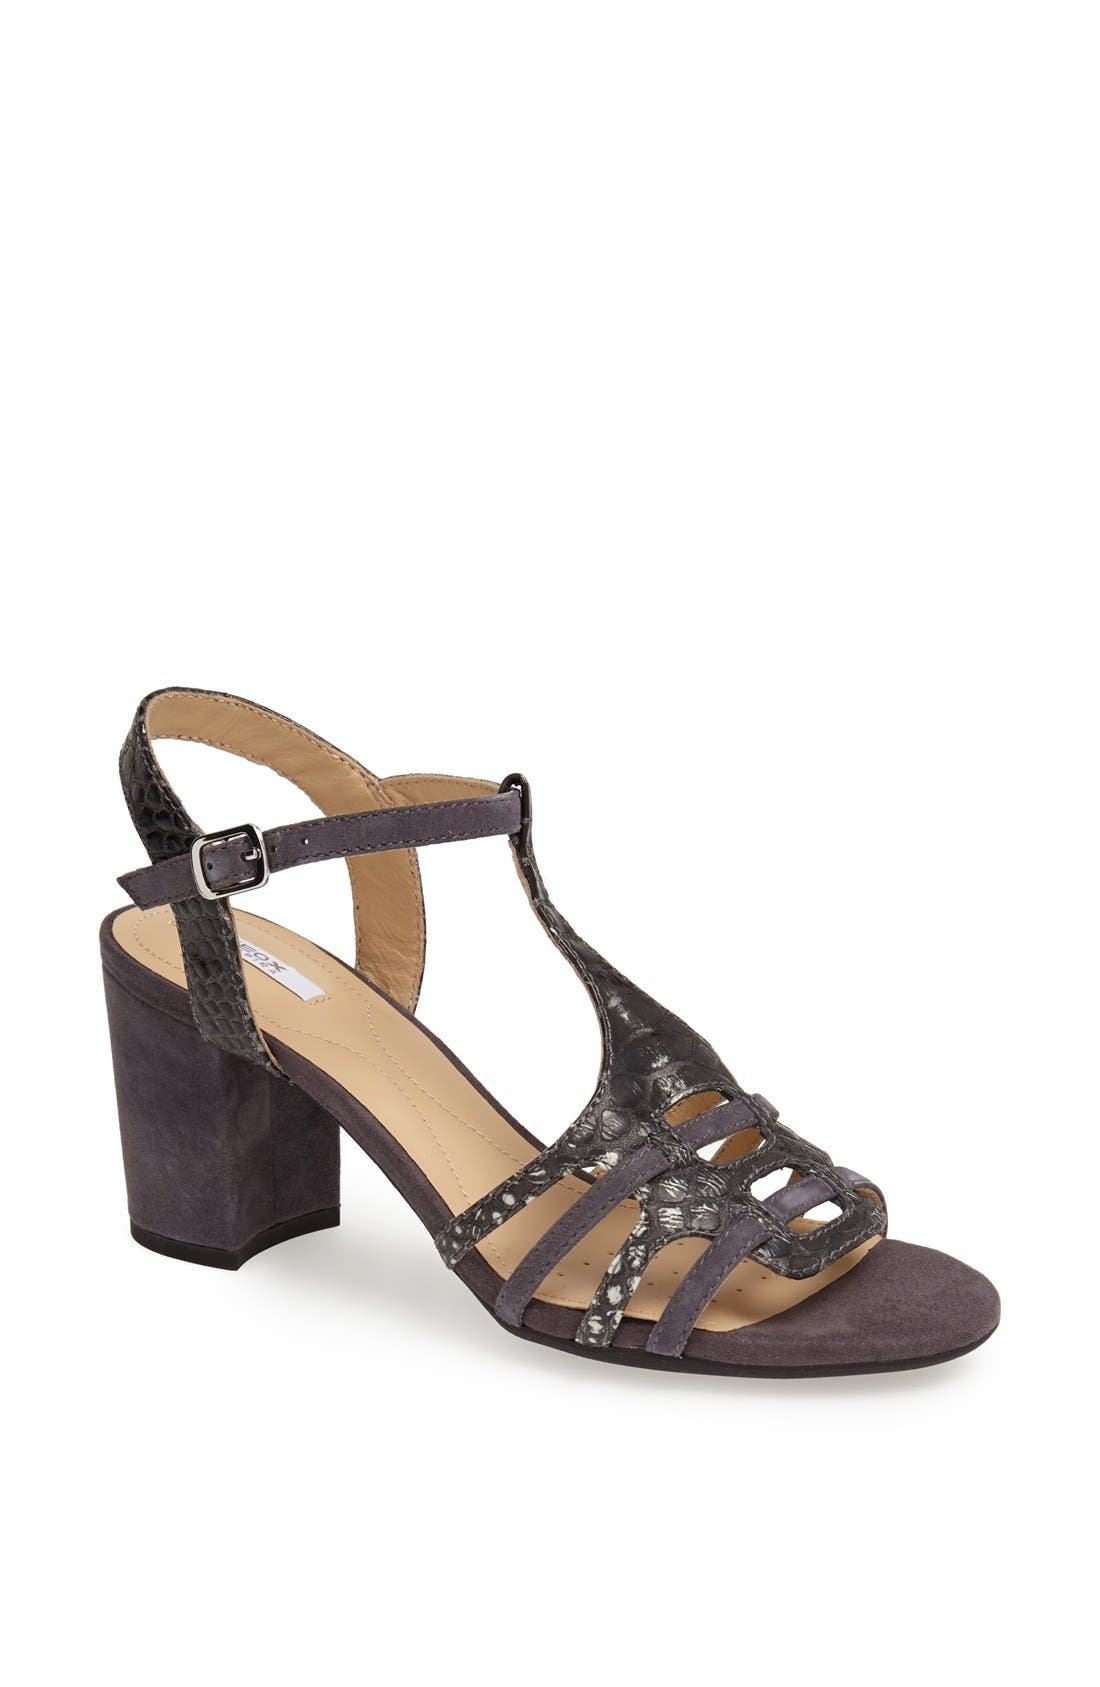 Alternate Image 1 Selected - Geox 'Nesa' Sandal